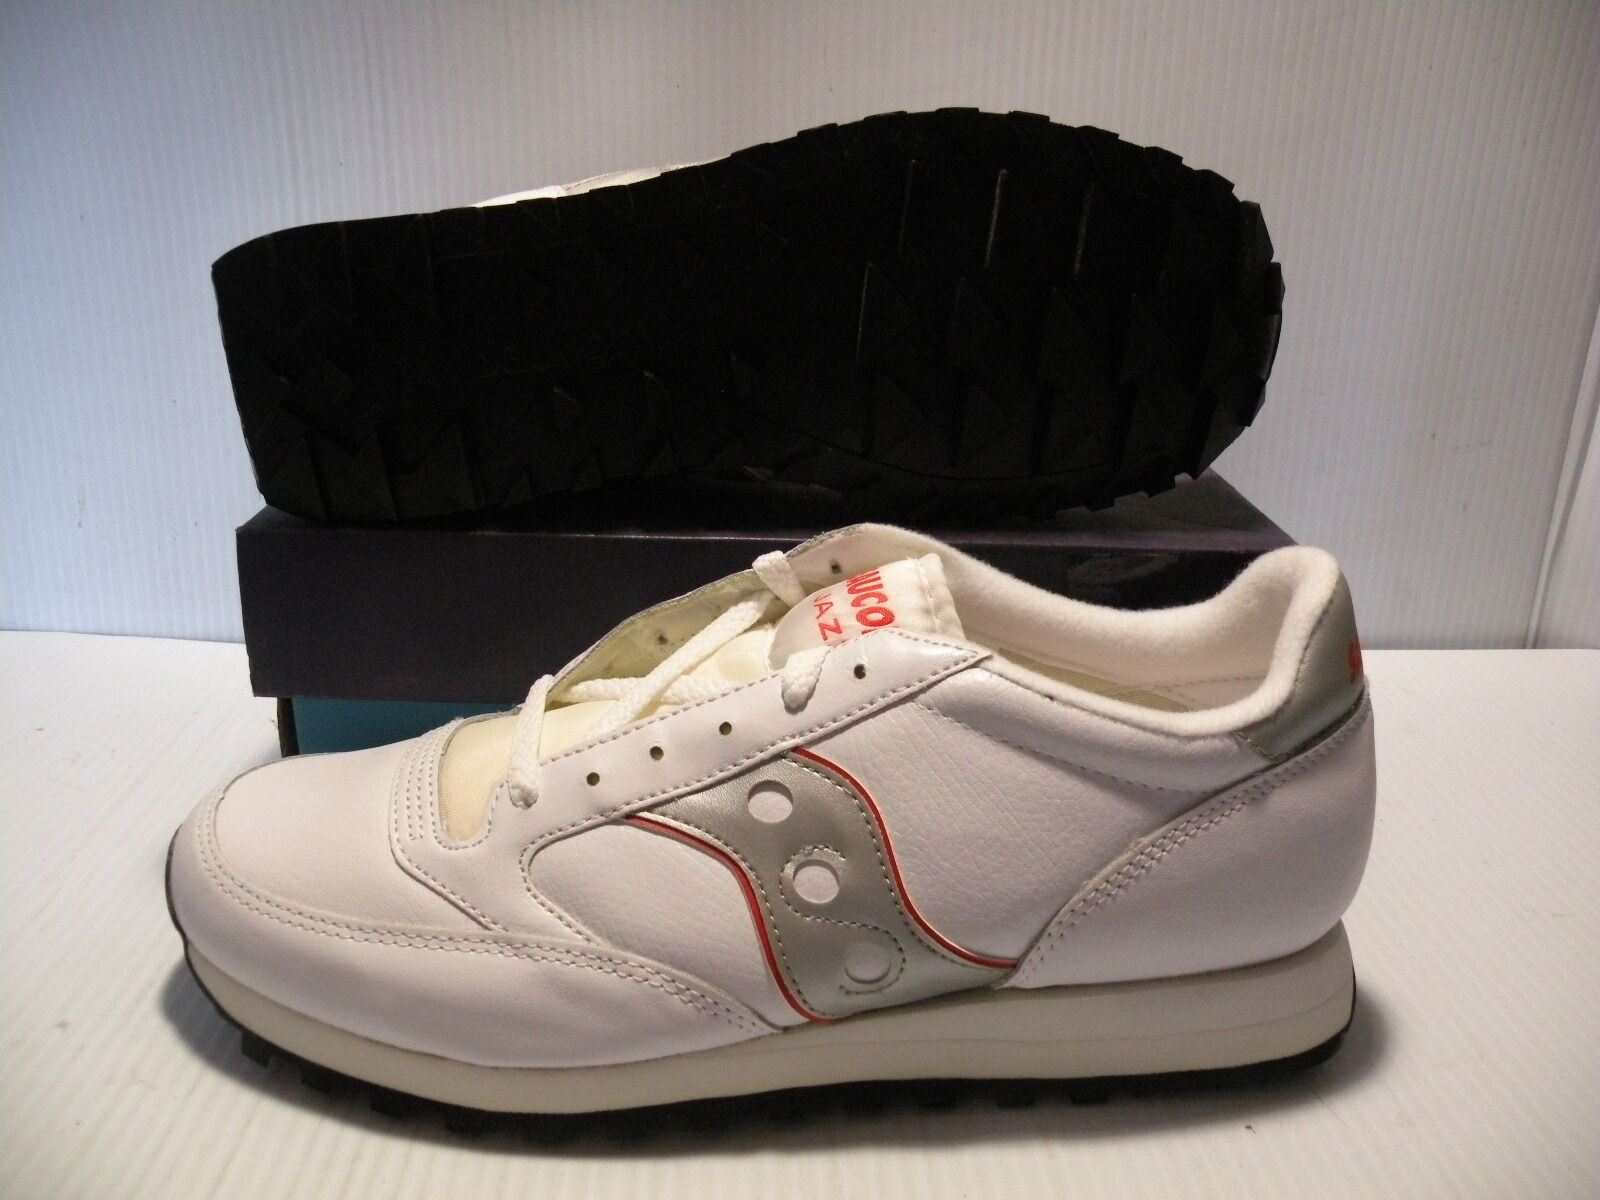 SAUCONY ORIGINAL LEATHER LOW SNEAKERS MEN SHOES WHIT SILVER 084-9 SIZE 12 NEW